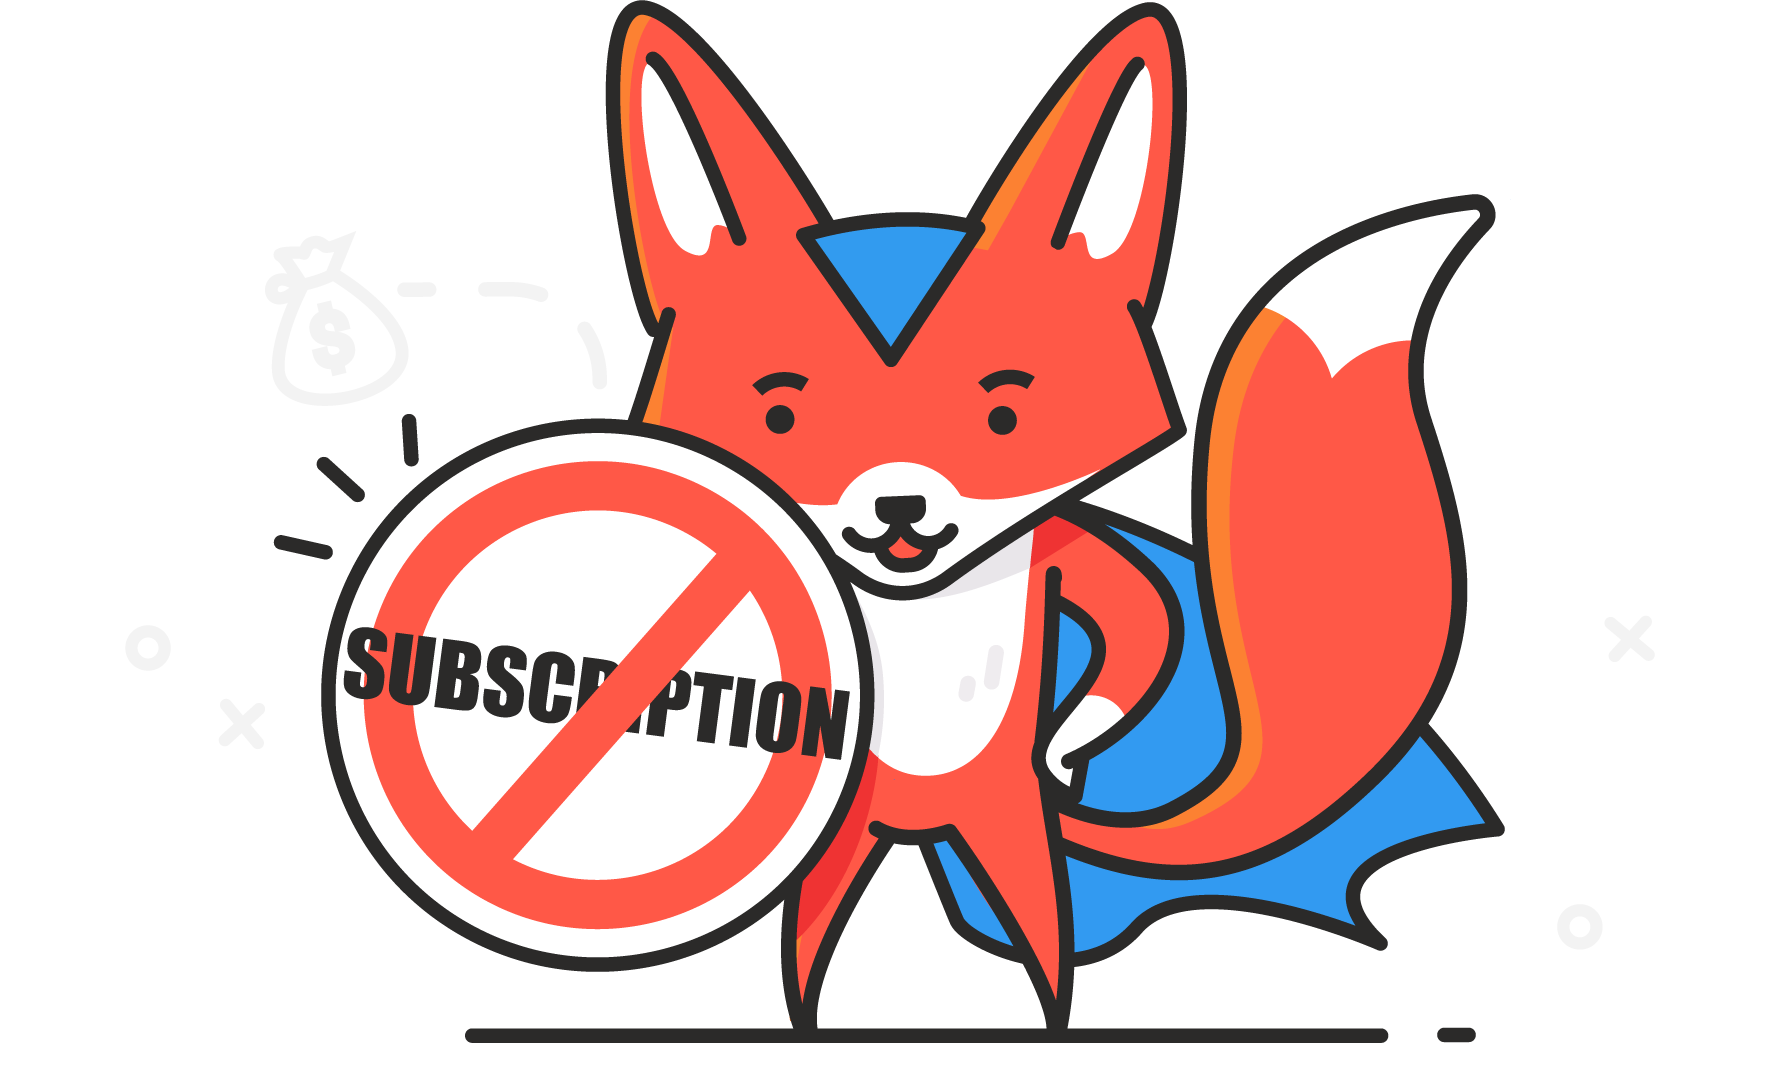 No Subscriptions